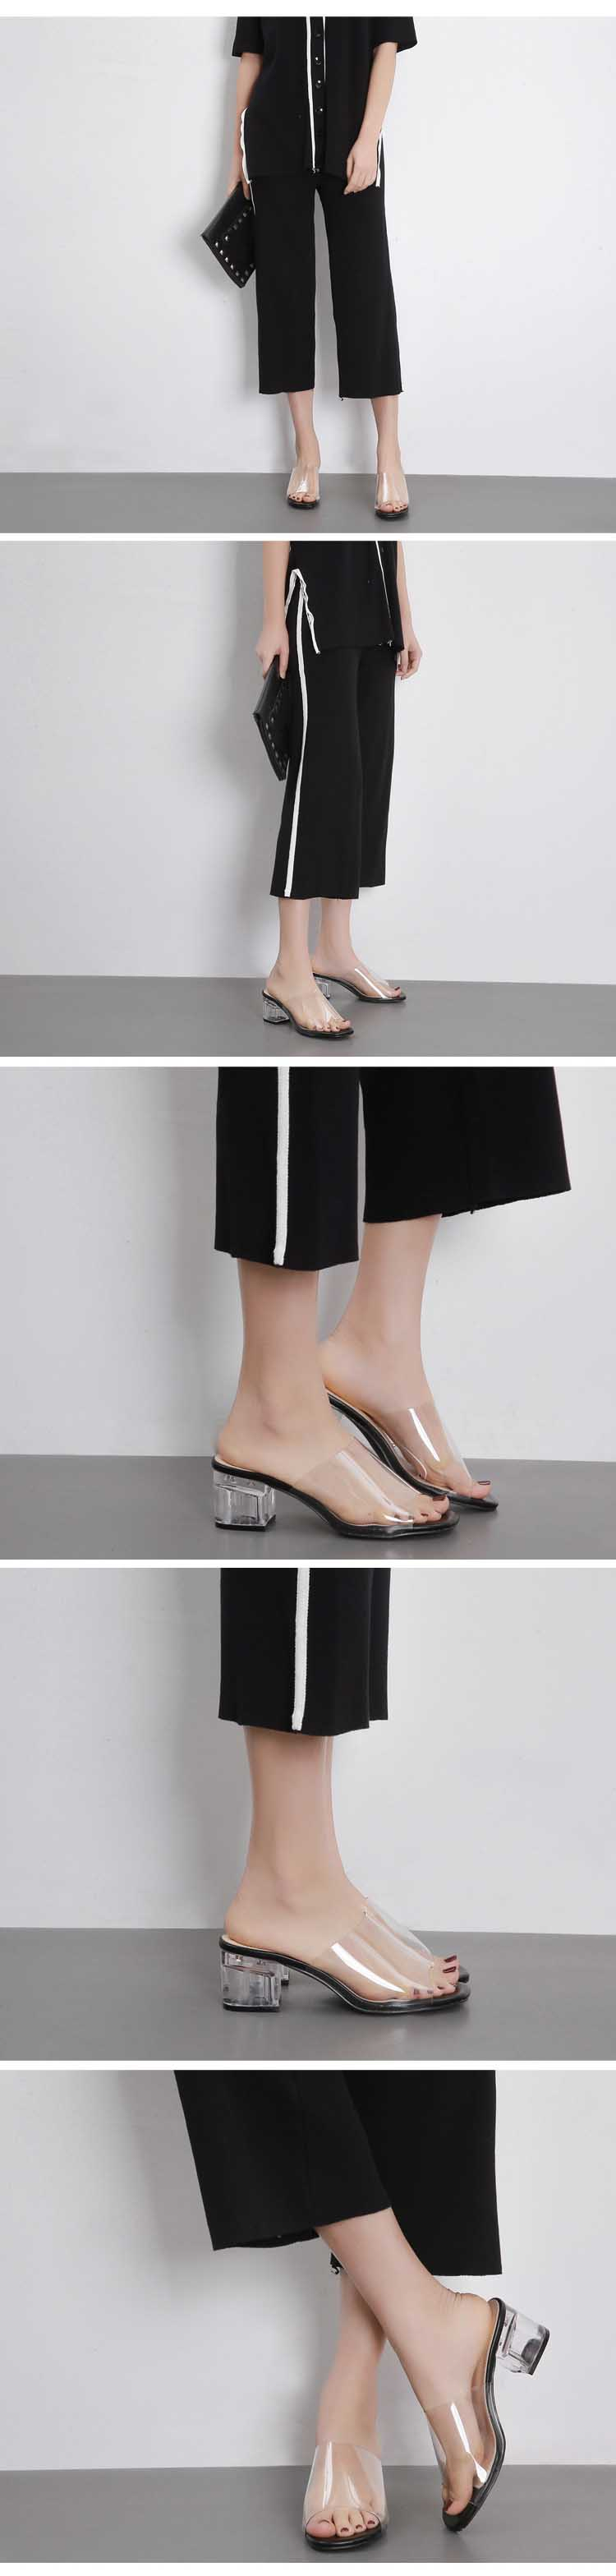 online shopping in pakistan shoes